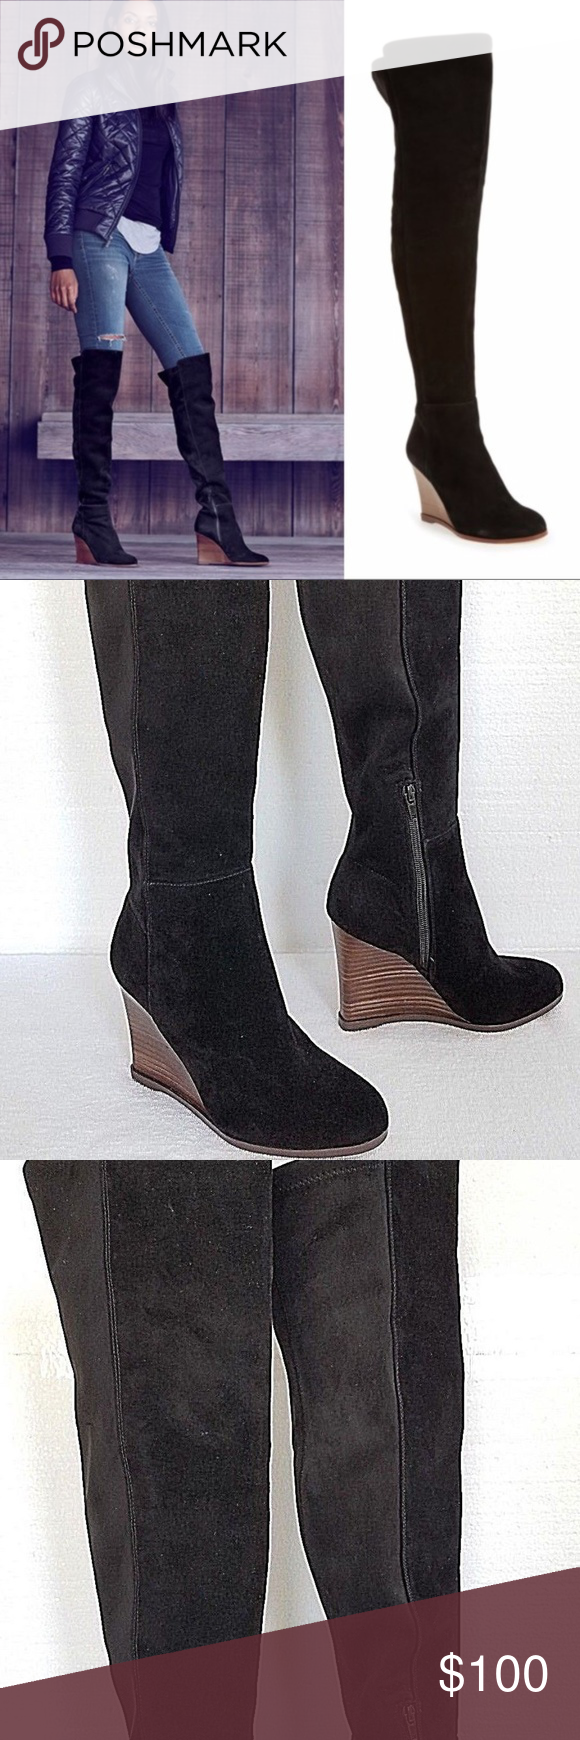 6eb534960ea Vince Camuto Granta Tall Wedge Boots Black 6M NEW Vince Camuto Granta  Women s Tall Boots Over